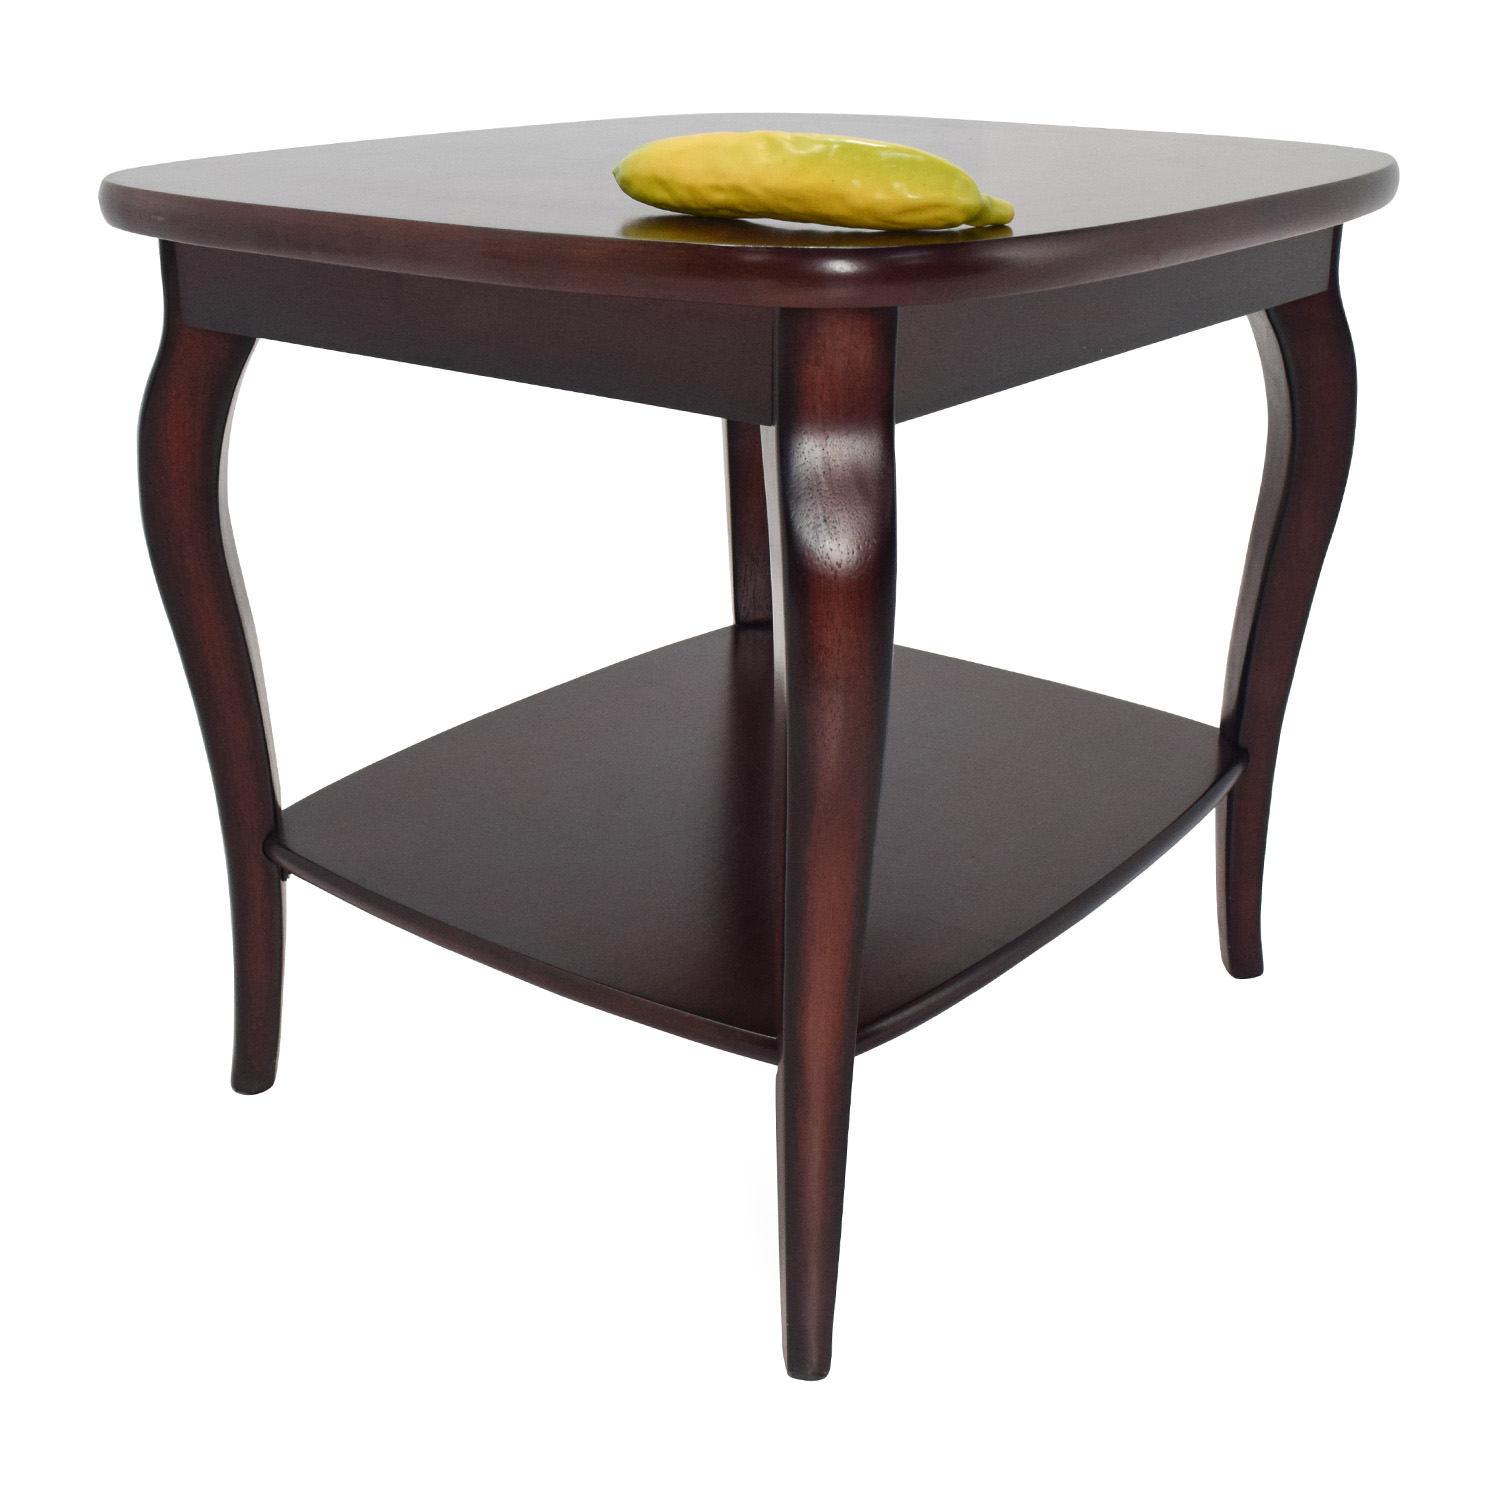 50 Off Raymour And Flanigan Raymour Flanigan Side Table Tables